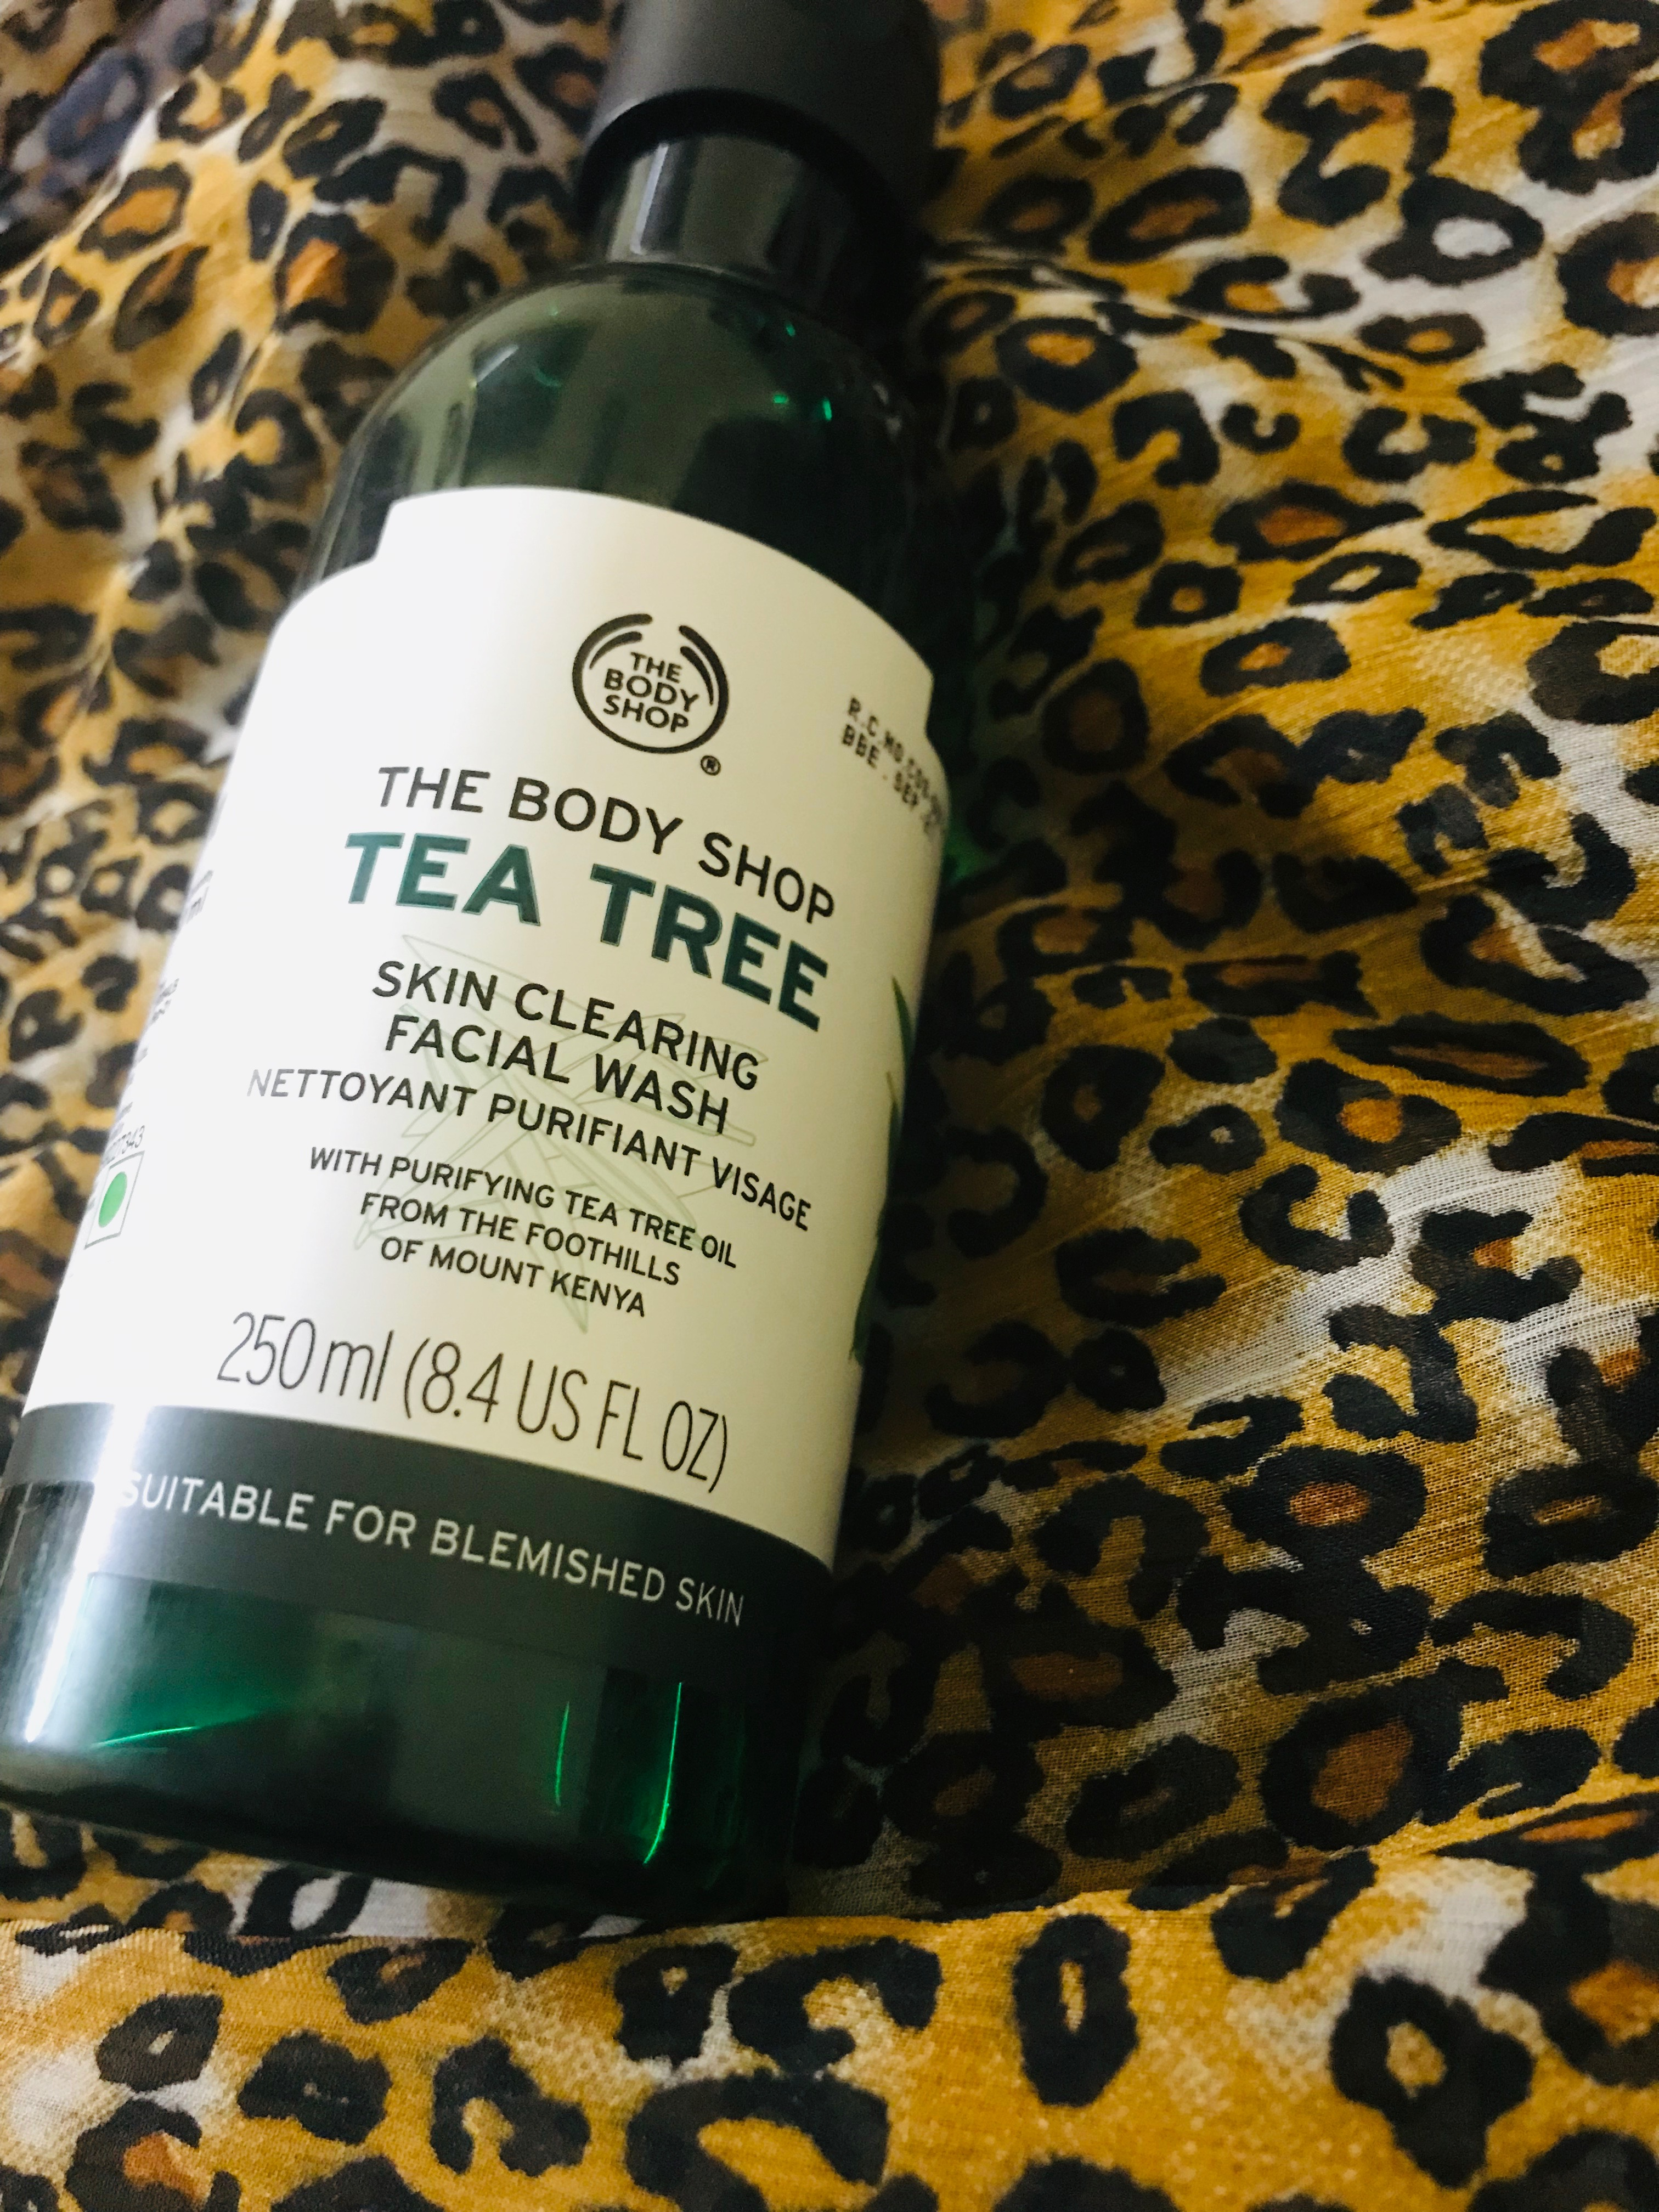 The Body Shop Tea Tree Skin Clearing Facial Wash-One of the best product from Body Shop Tea Tree Range-By ruchi_sharma-2